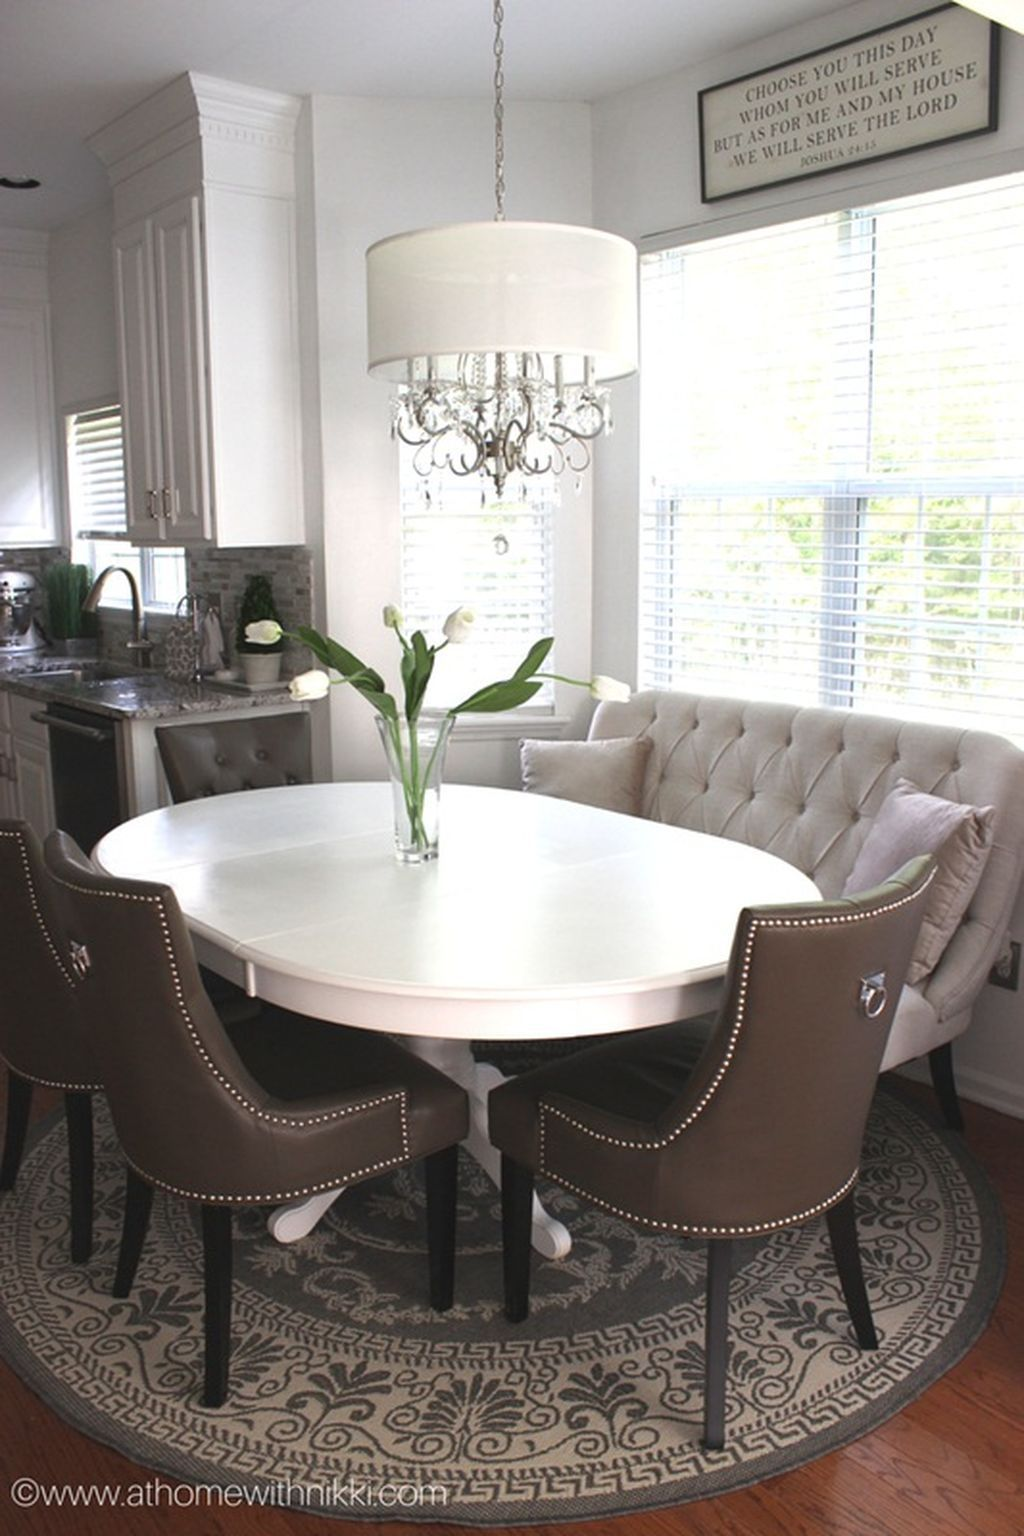 Dining Room Addition Home Design Ideas Pictures Remodel And Decor: 42 Inspiring Kitchen Table That Make Your Home Look Fabulous